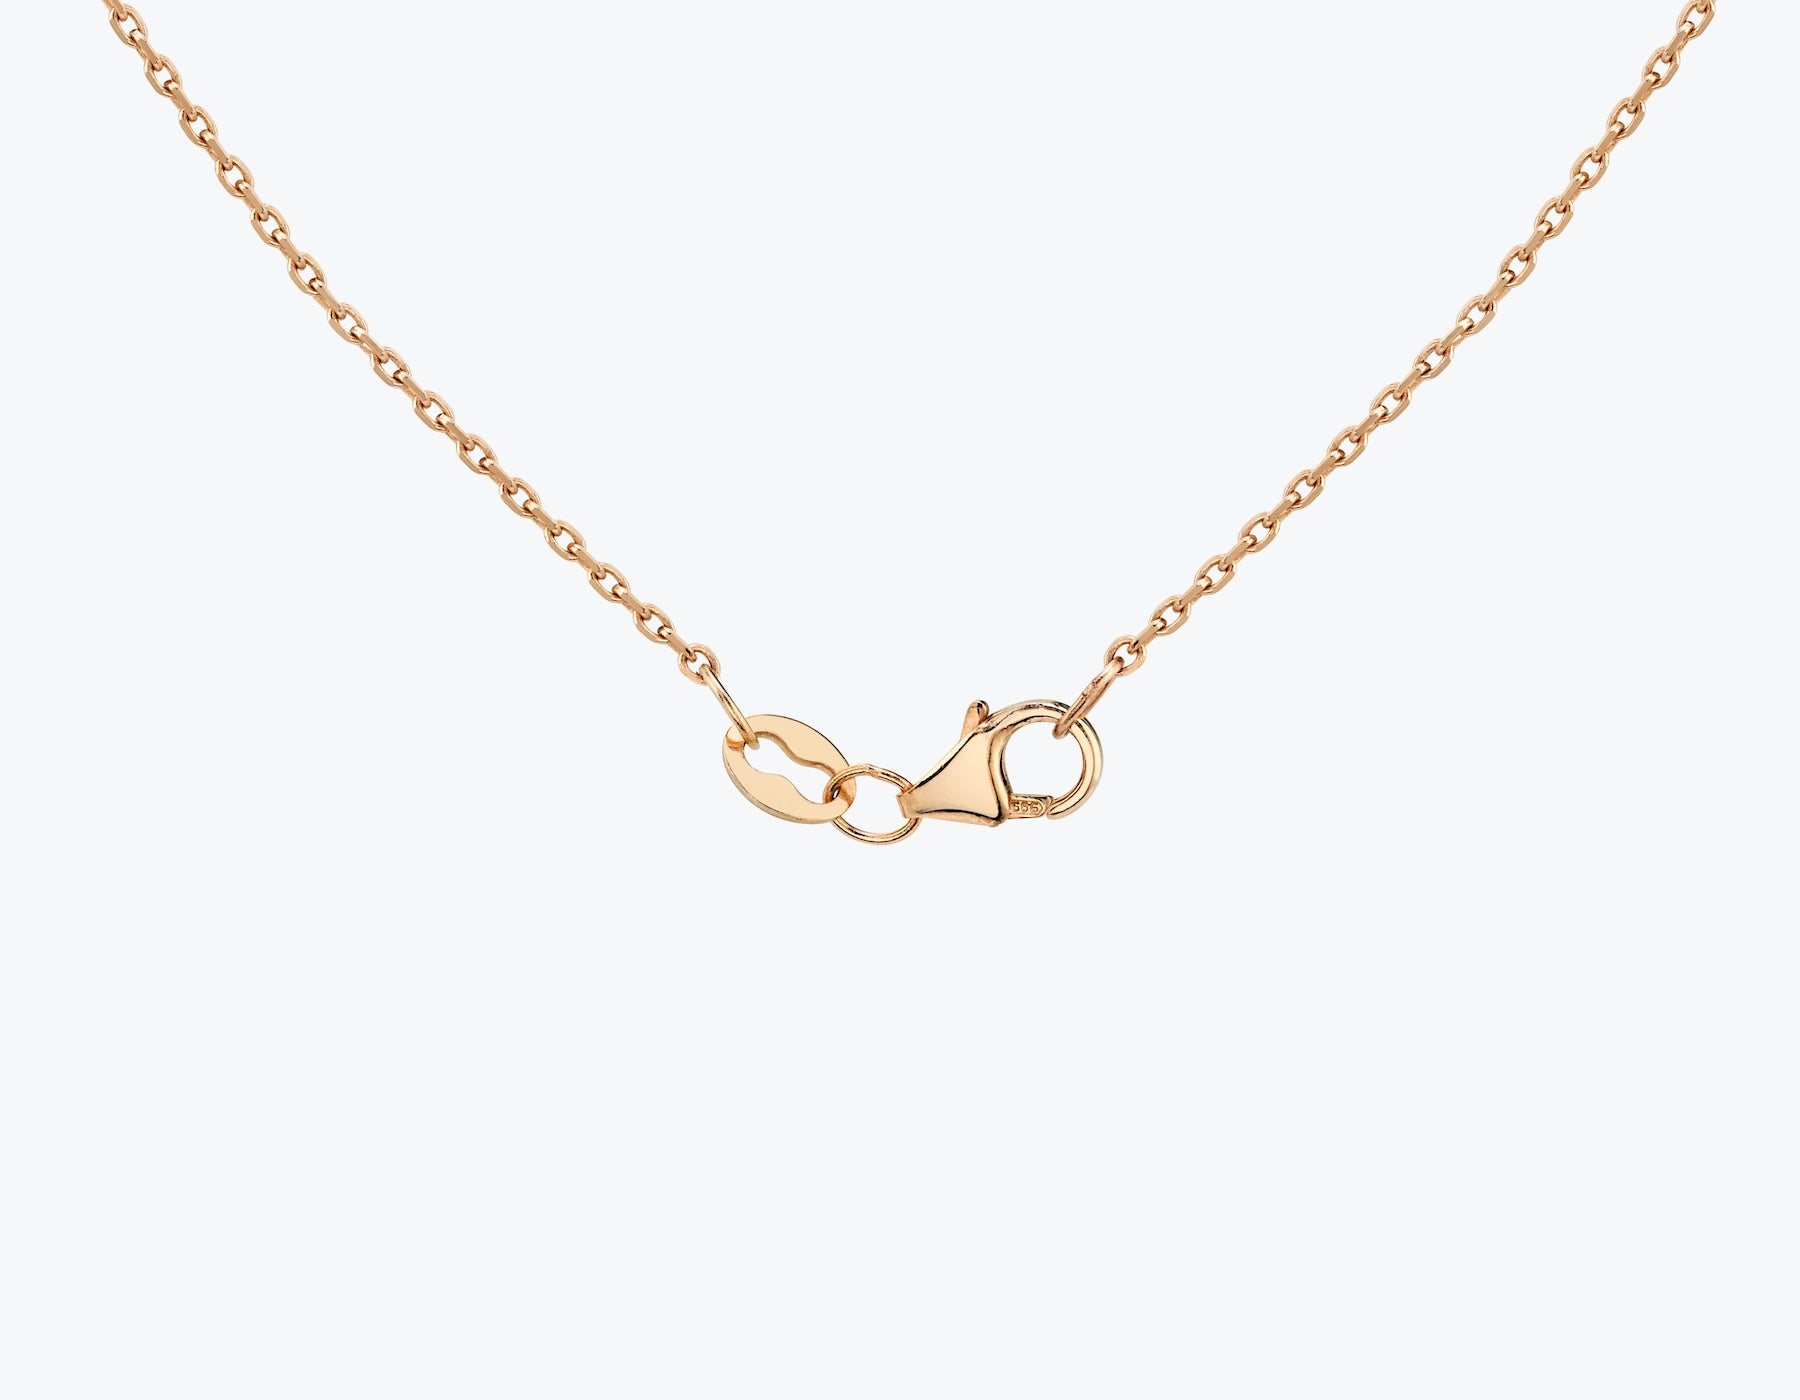 Vrai necklace clasp, 14K Rose Gold